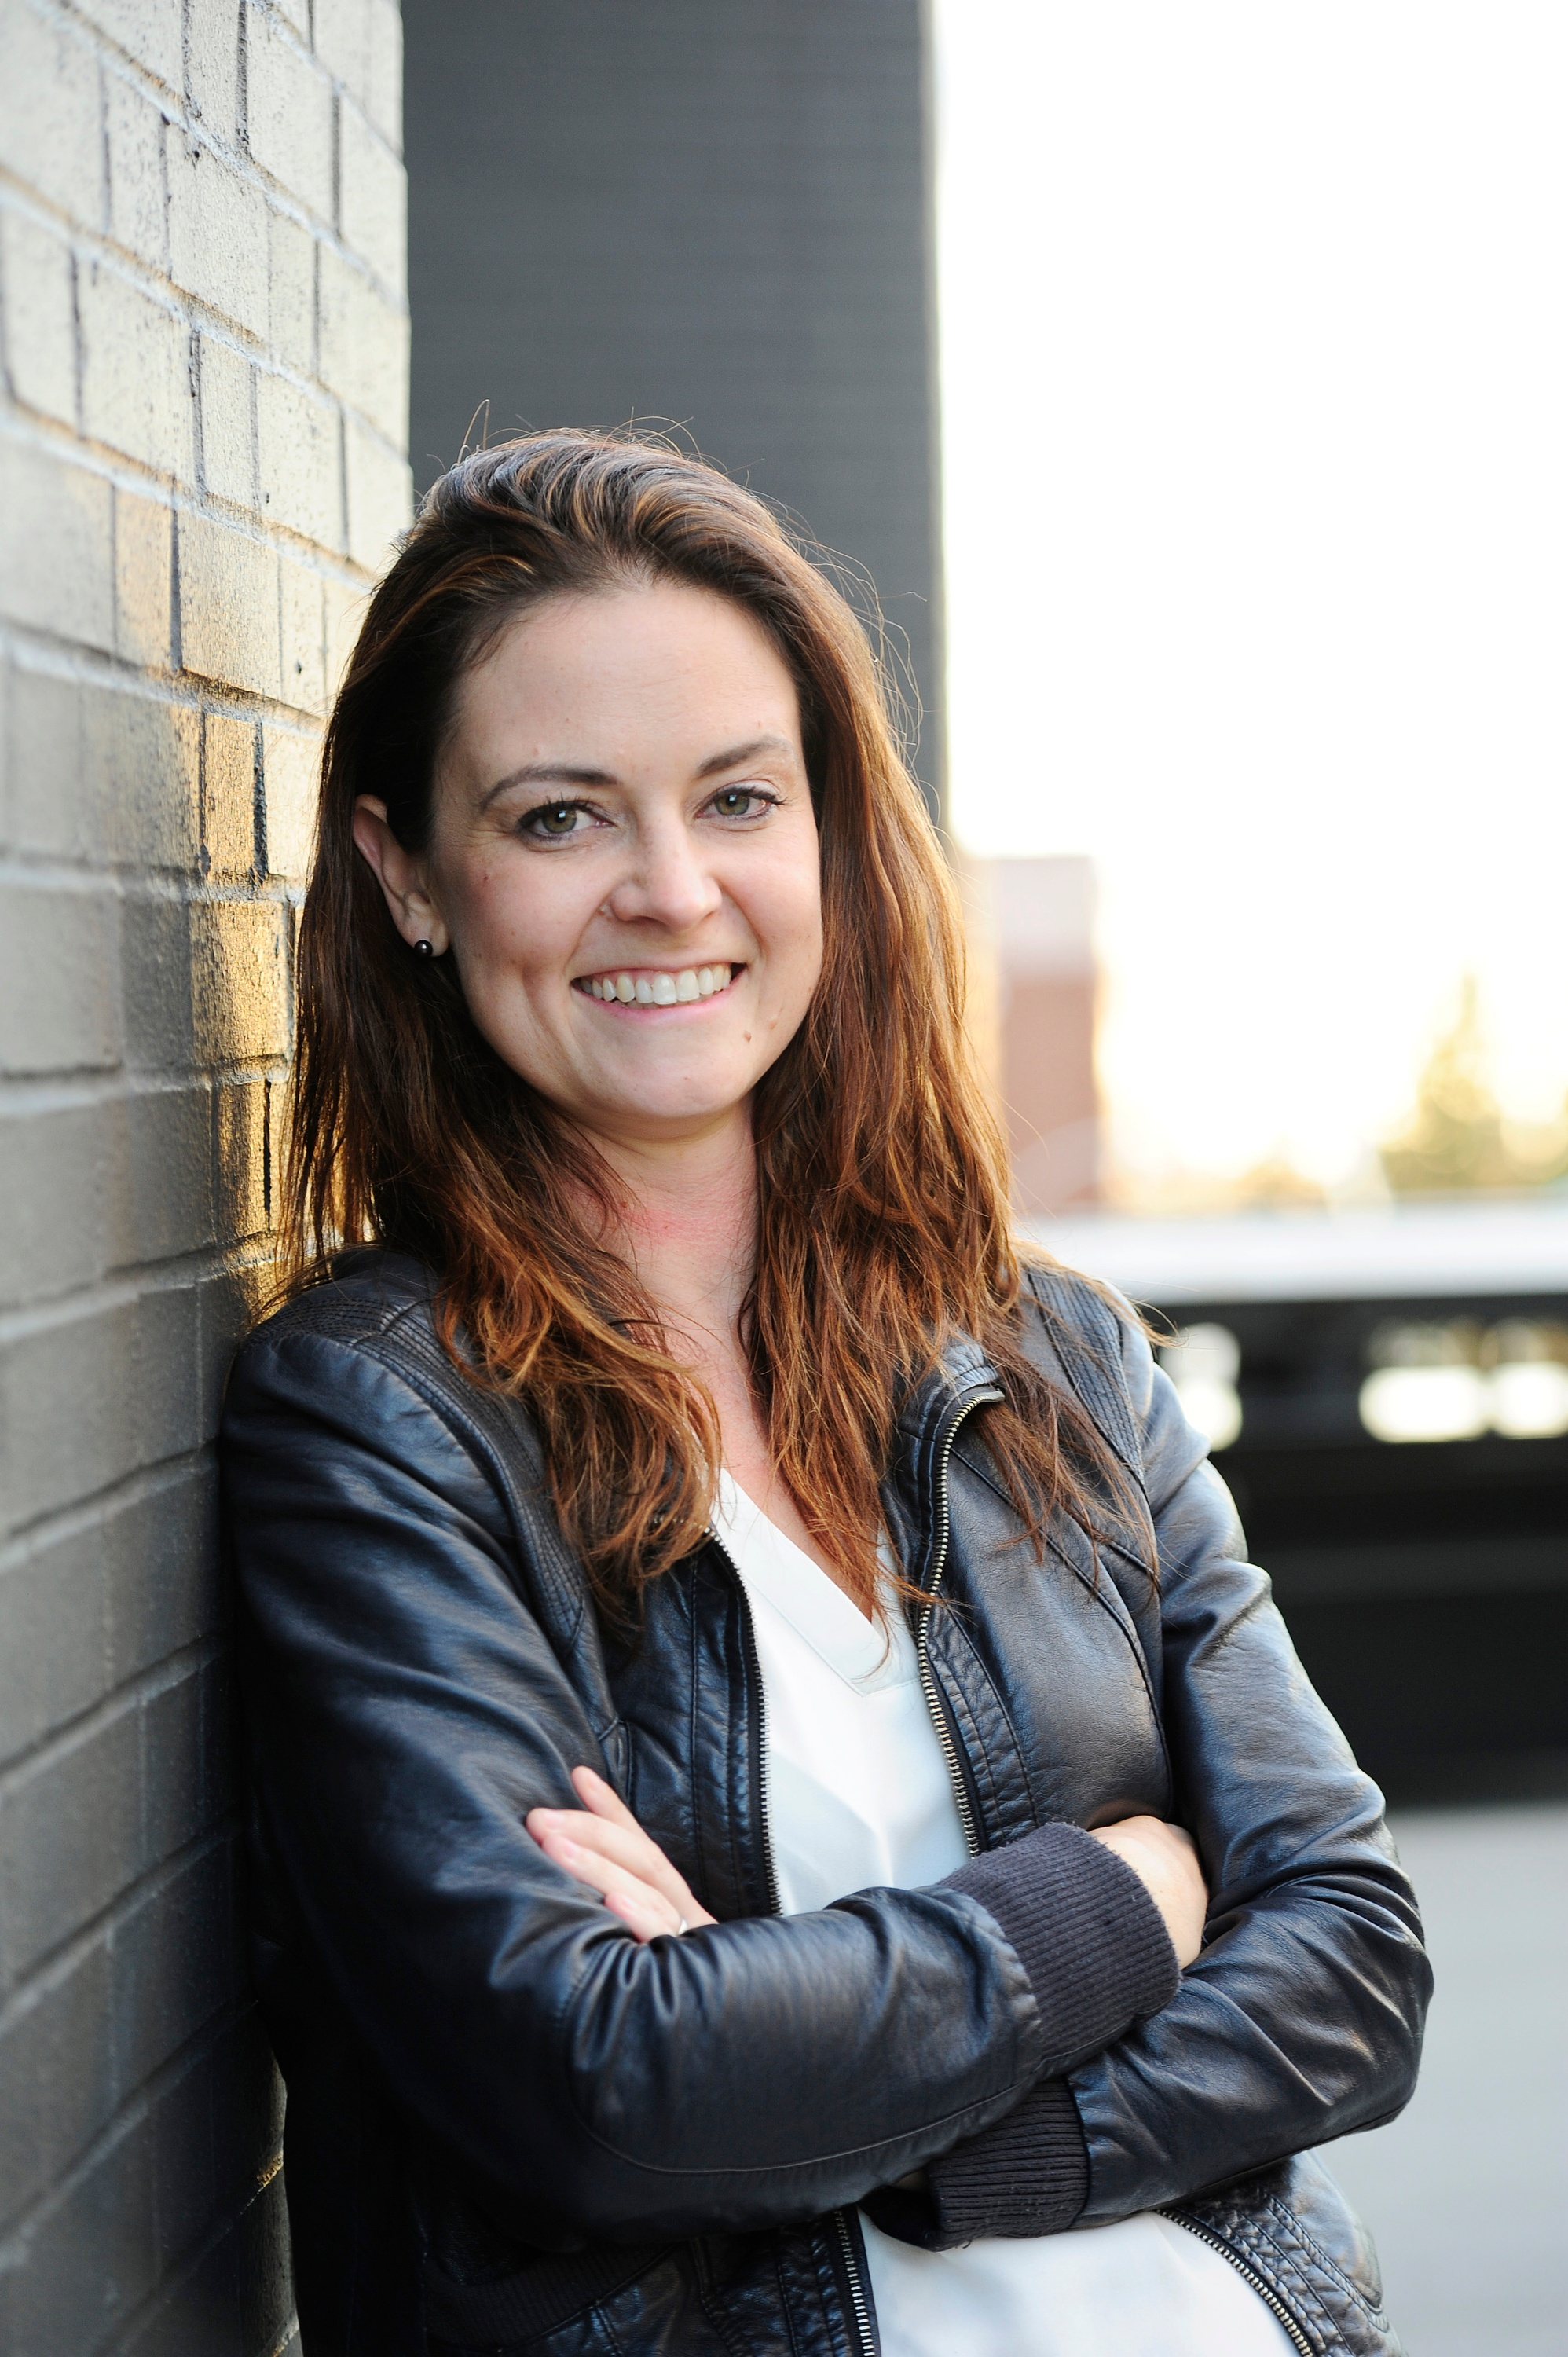 Headshot of Alanna Imbach School of Coworking Spring manager